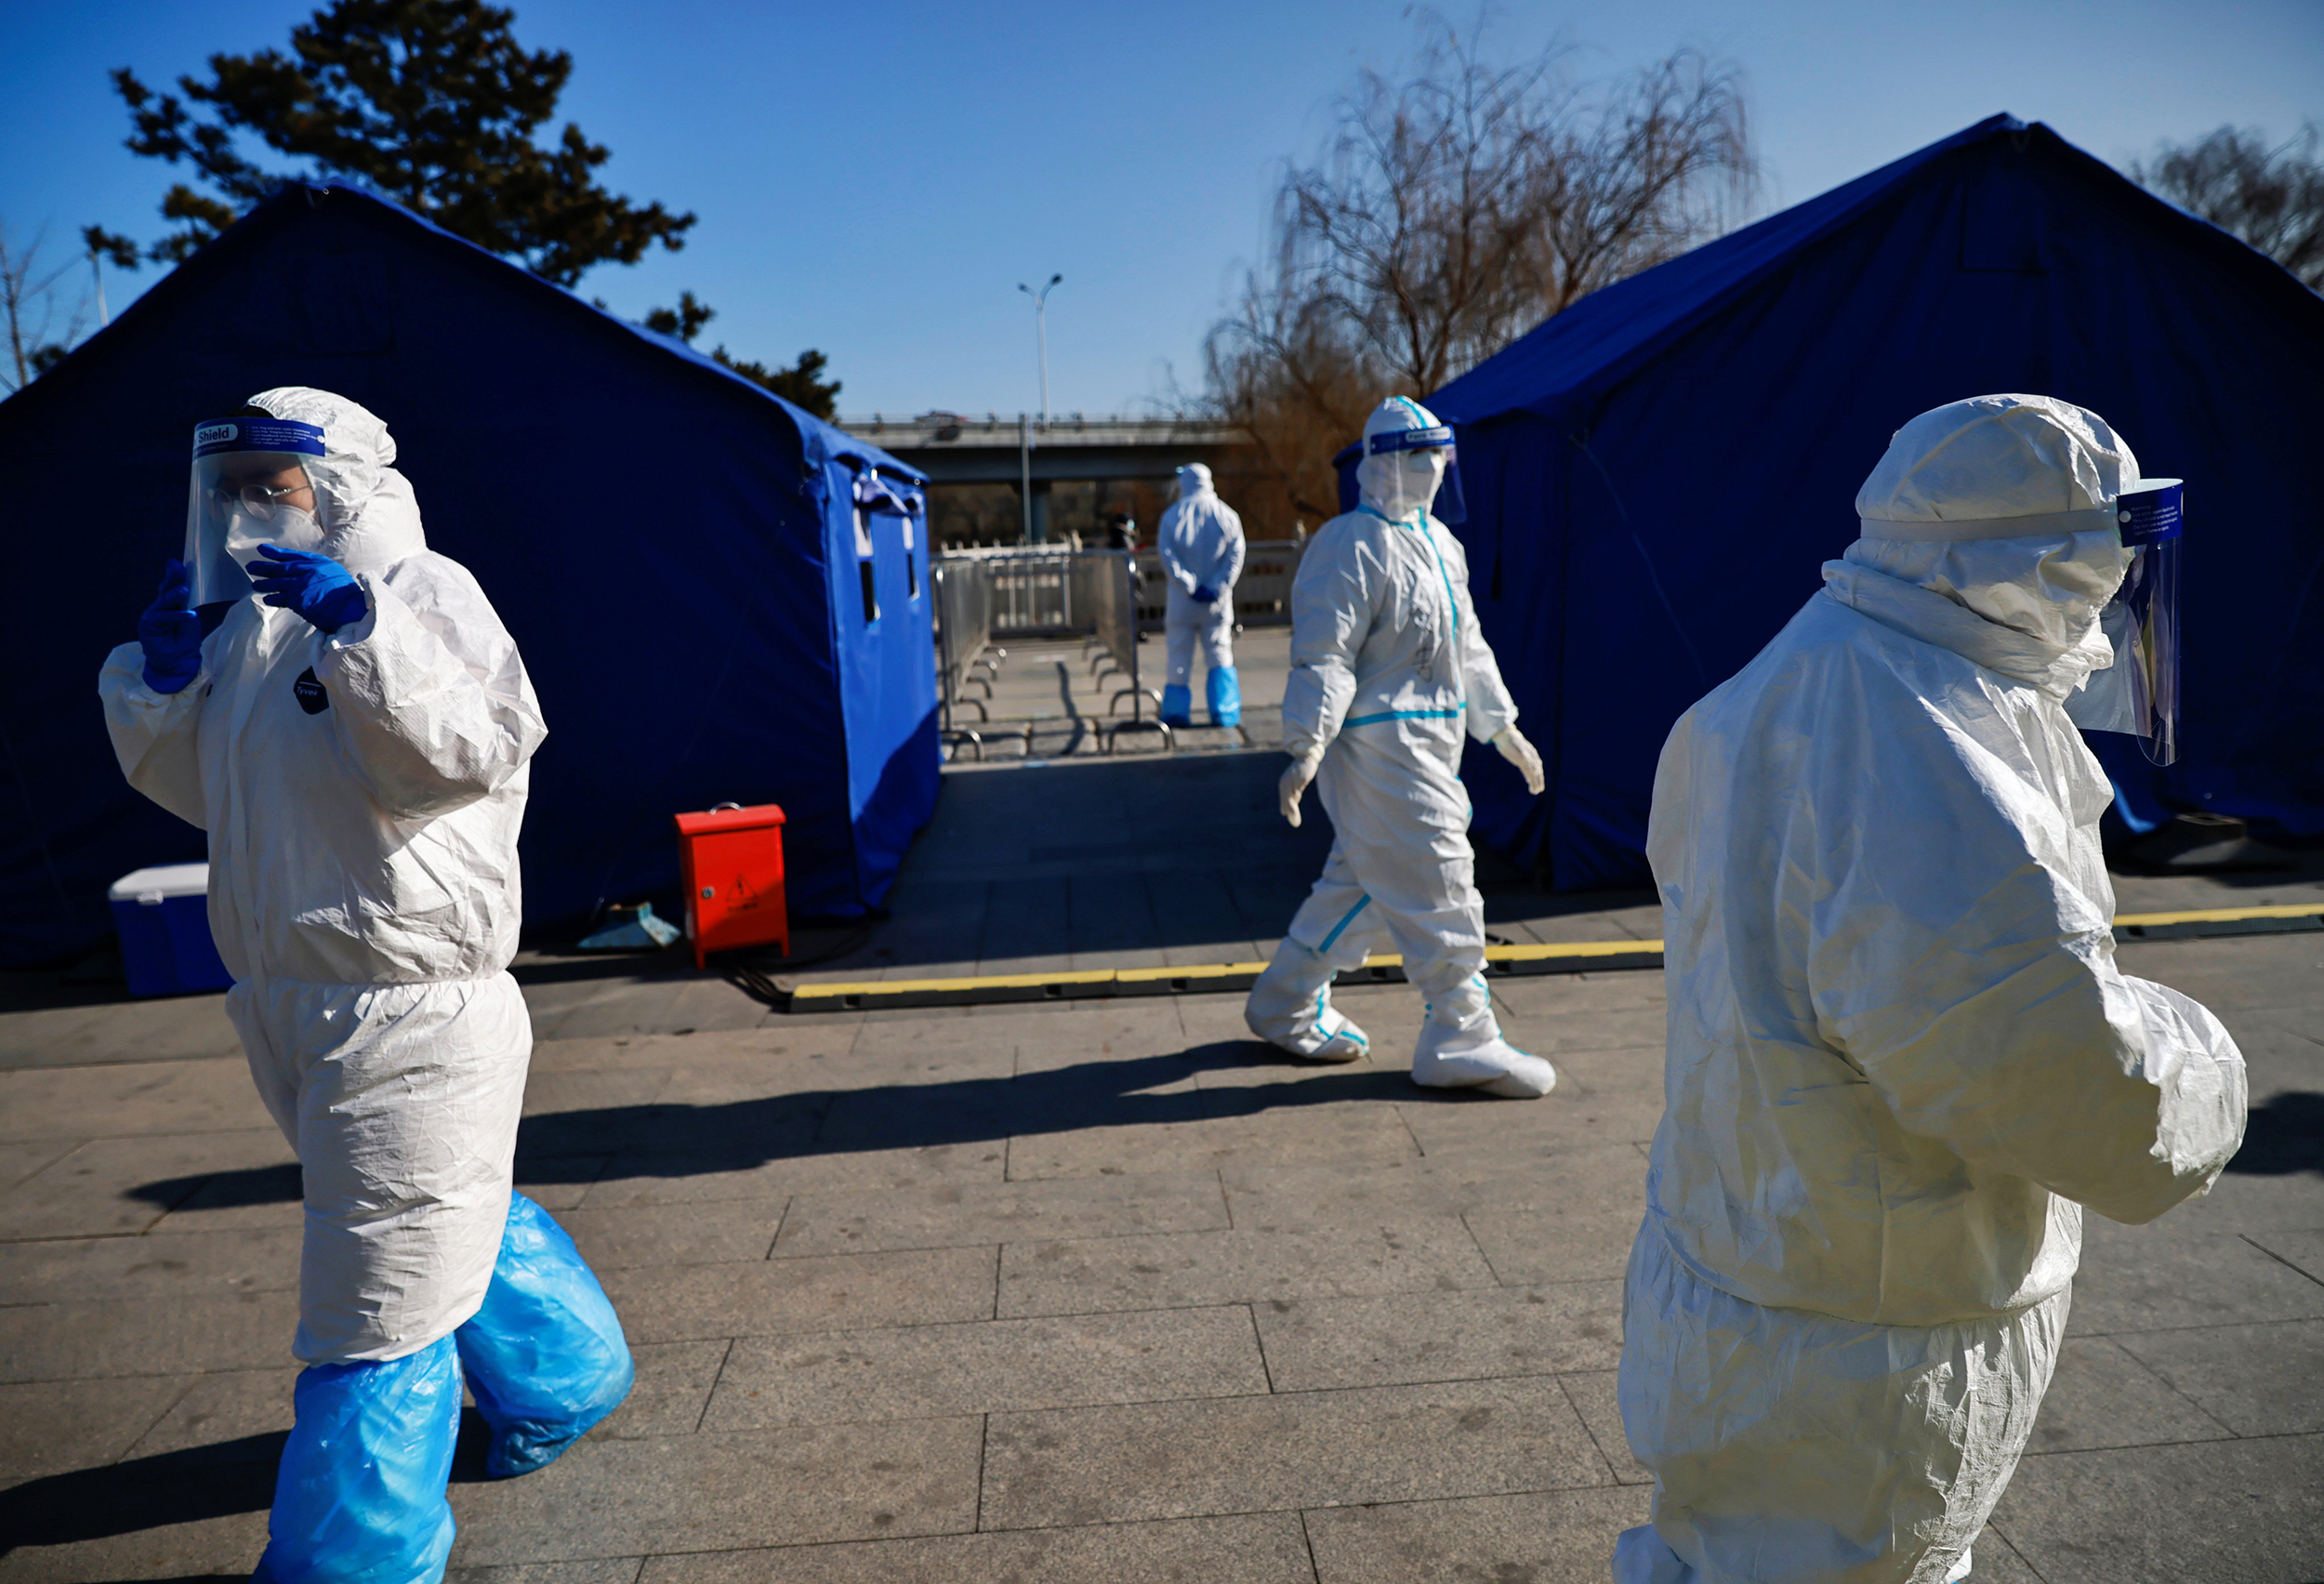 Panel critical of pandemic delays by China, WHO